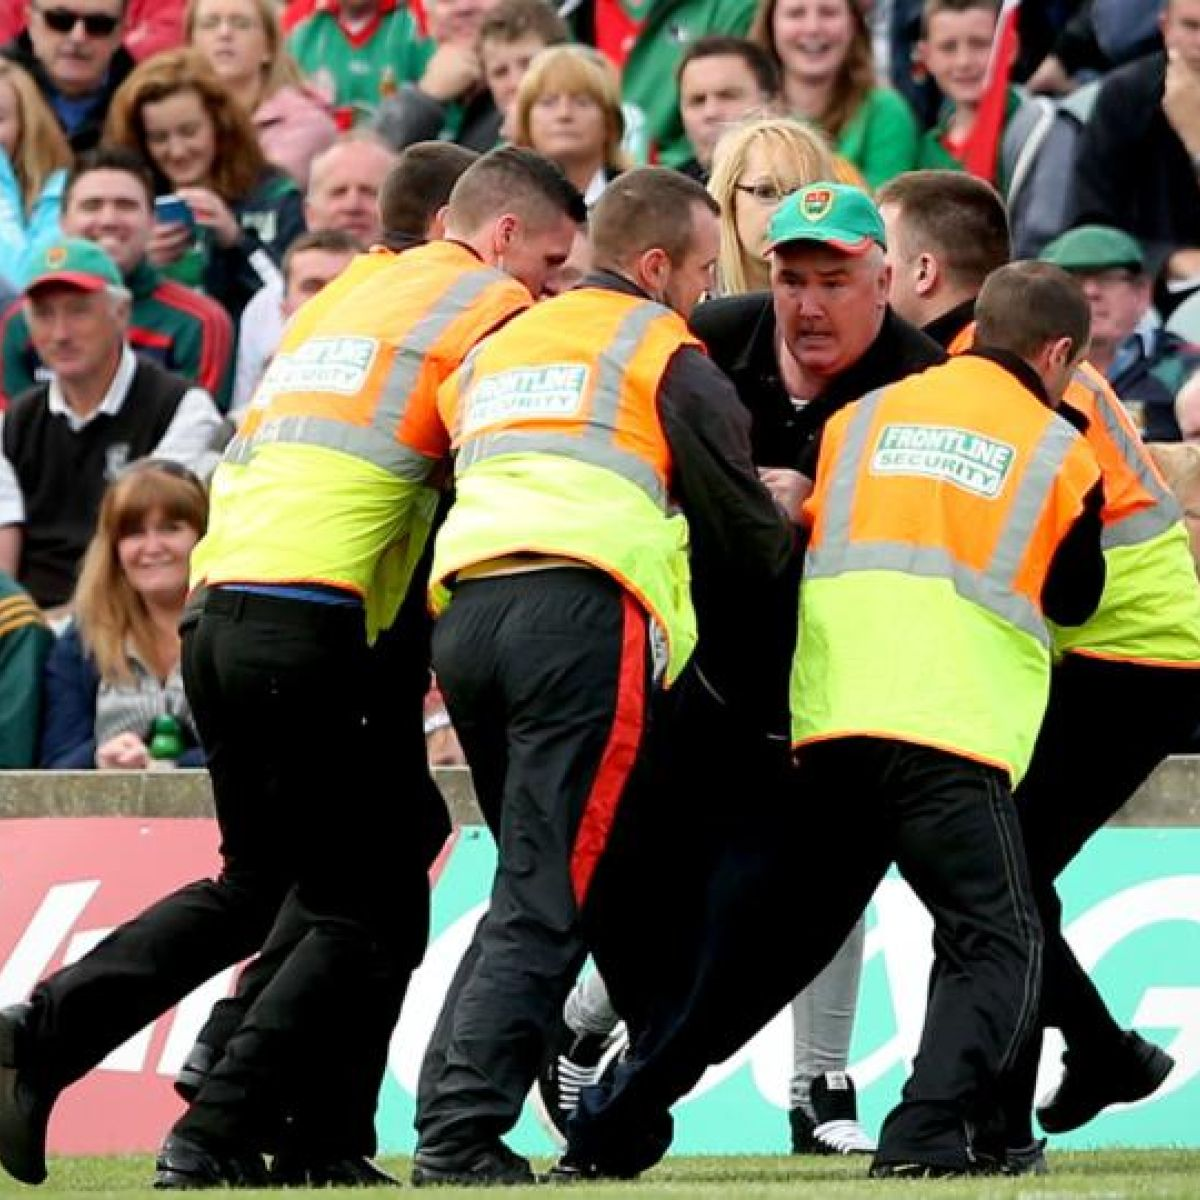 Mayo supporter likely to be stuck with 12-month ban for pitch invasion